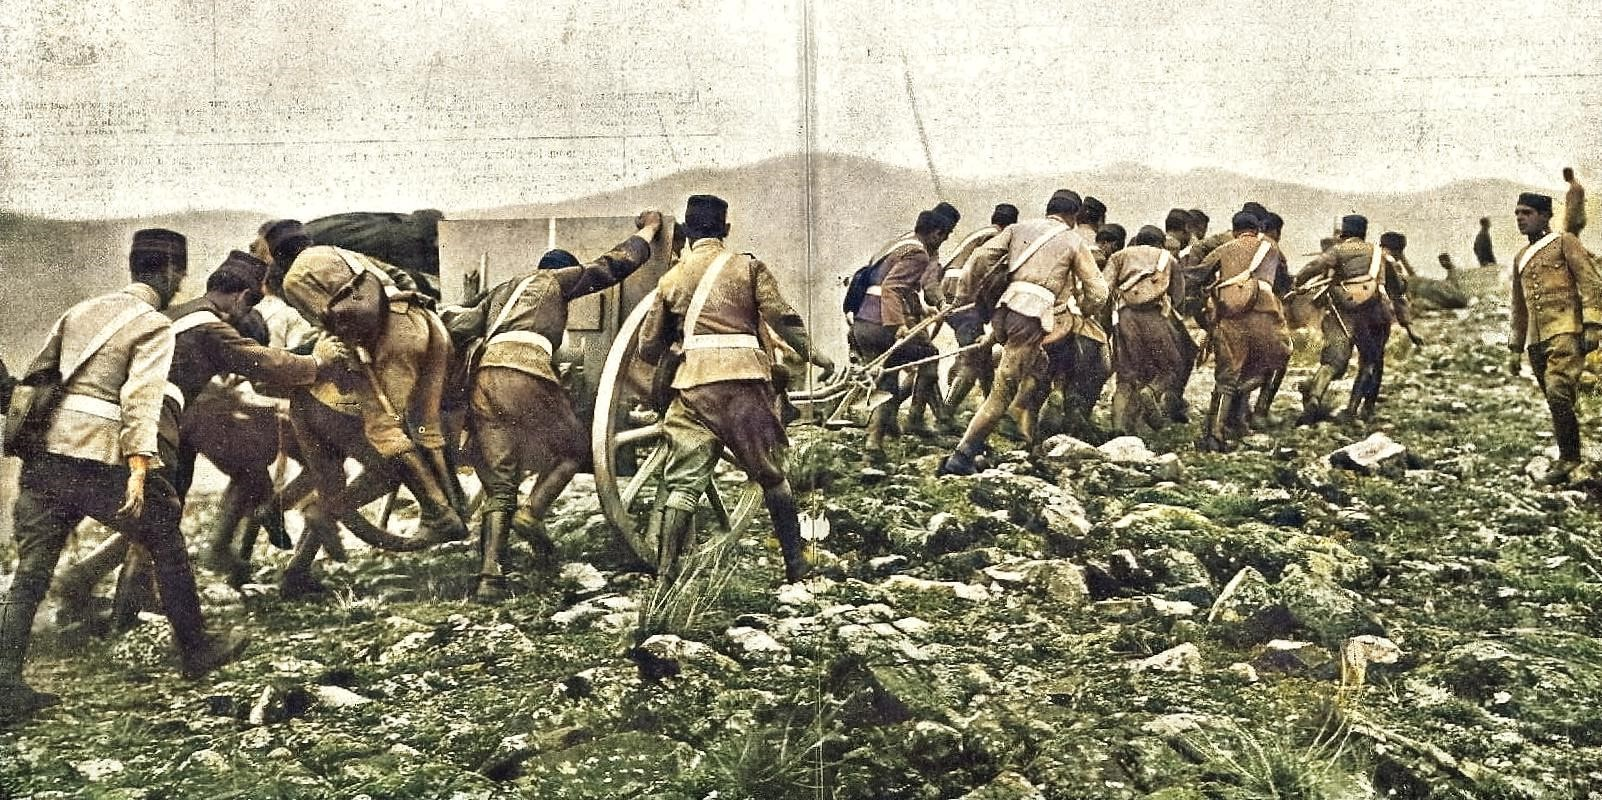 colorized-image (4)